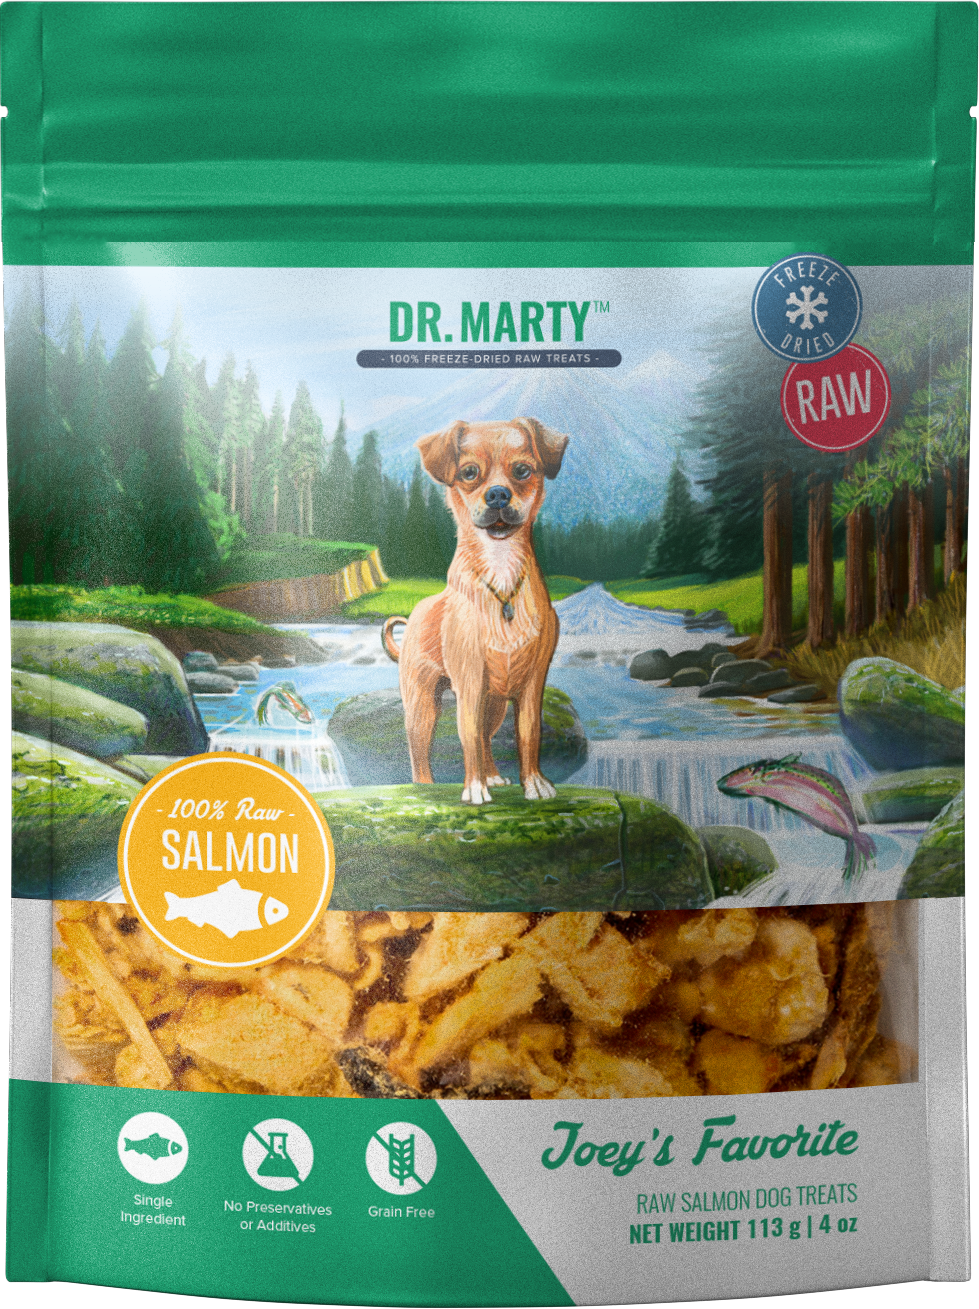 Pin on Dr. Marty Pets Dog Treats